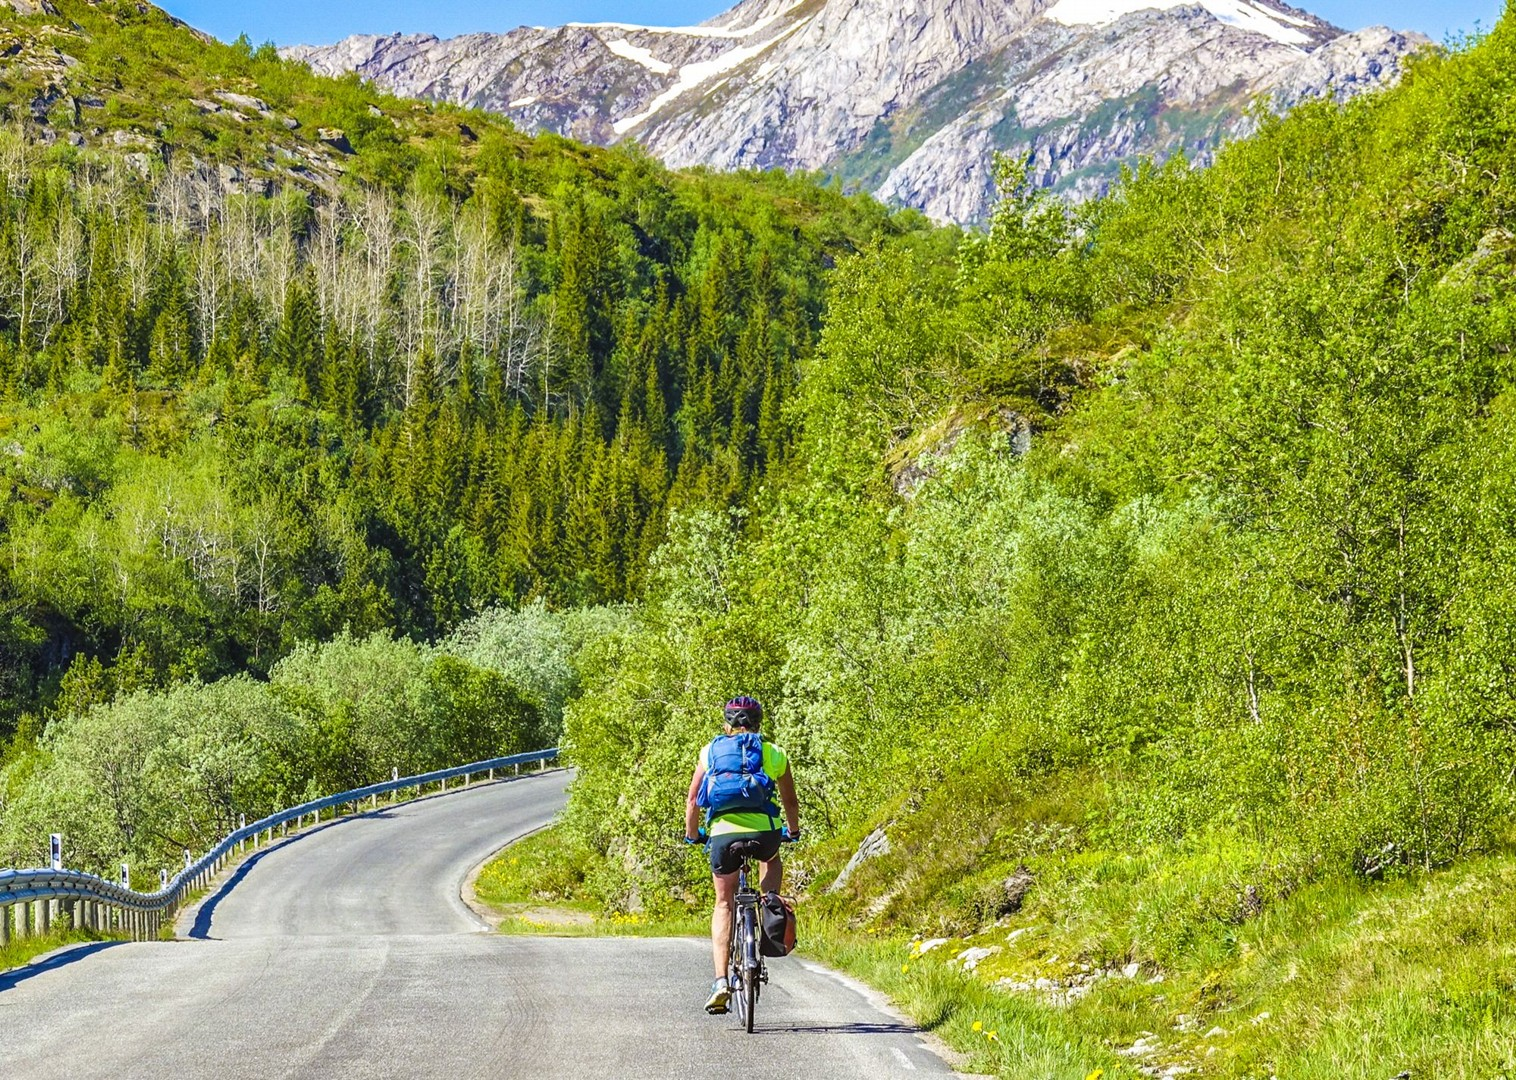 self-guided-norway-forests-quiet-roads-bike-tour-lofoten.jpg - Norway - Lofoten Islands - Self-Guided Leisure Cycling Holiday - Leisure Cycling